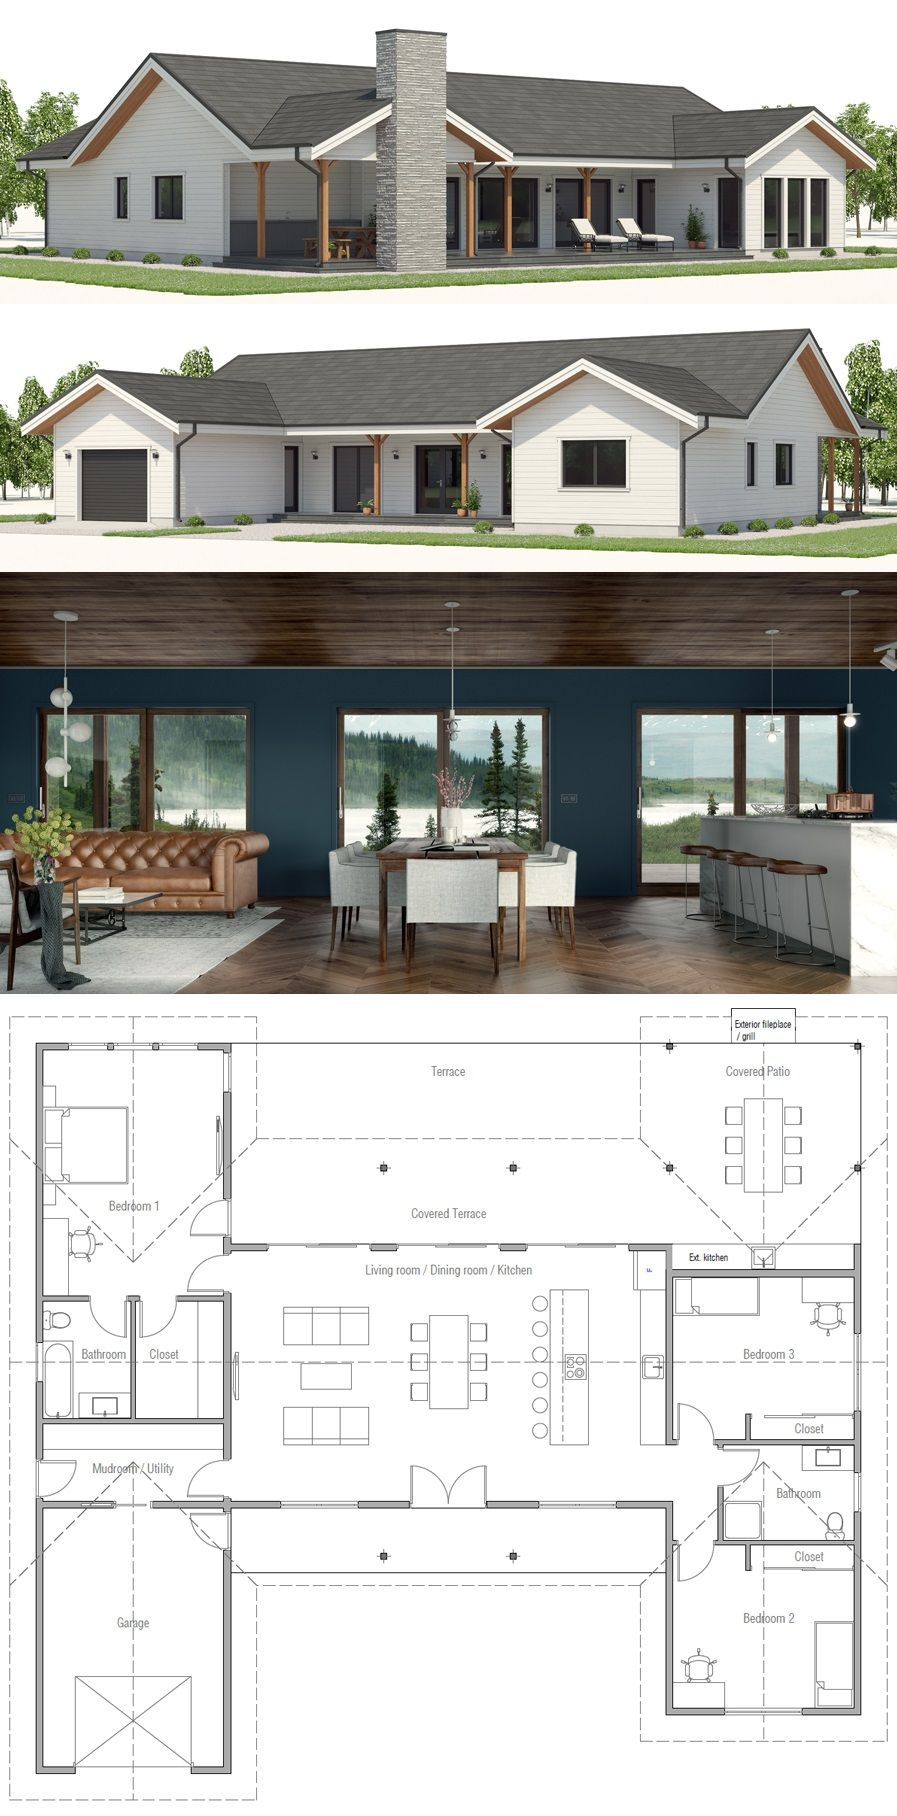 House Plan With Large Covered Terrace And Exterior Fireplace New House Plans Modern House Plans Small House Plans